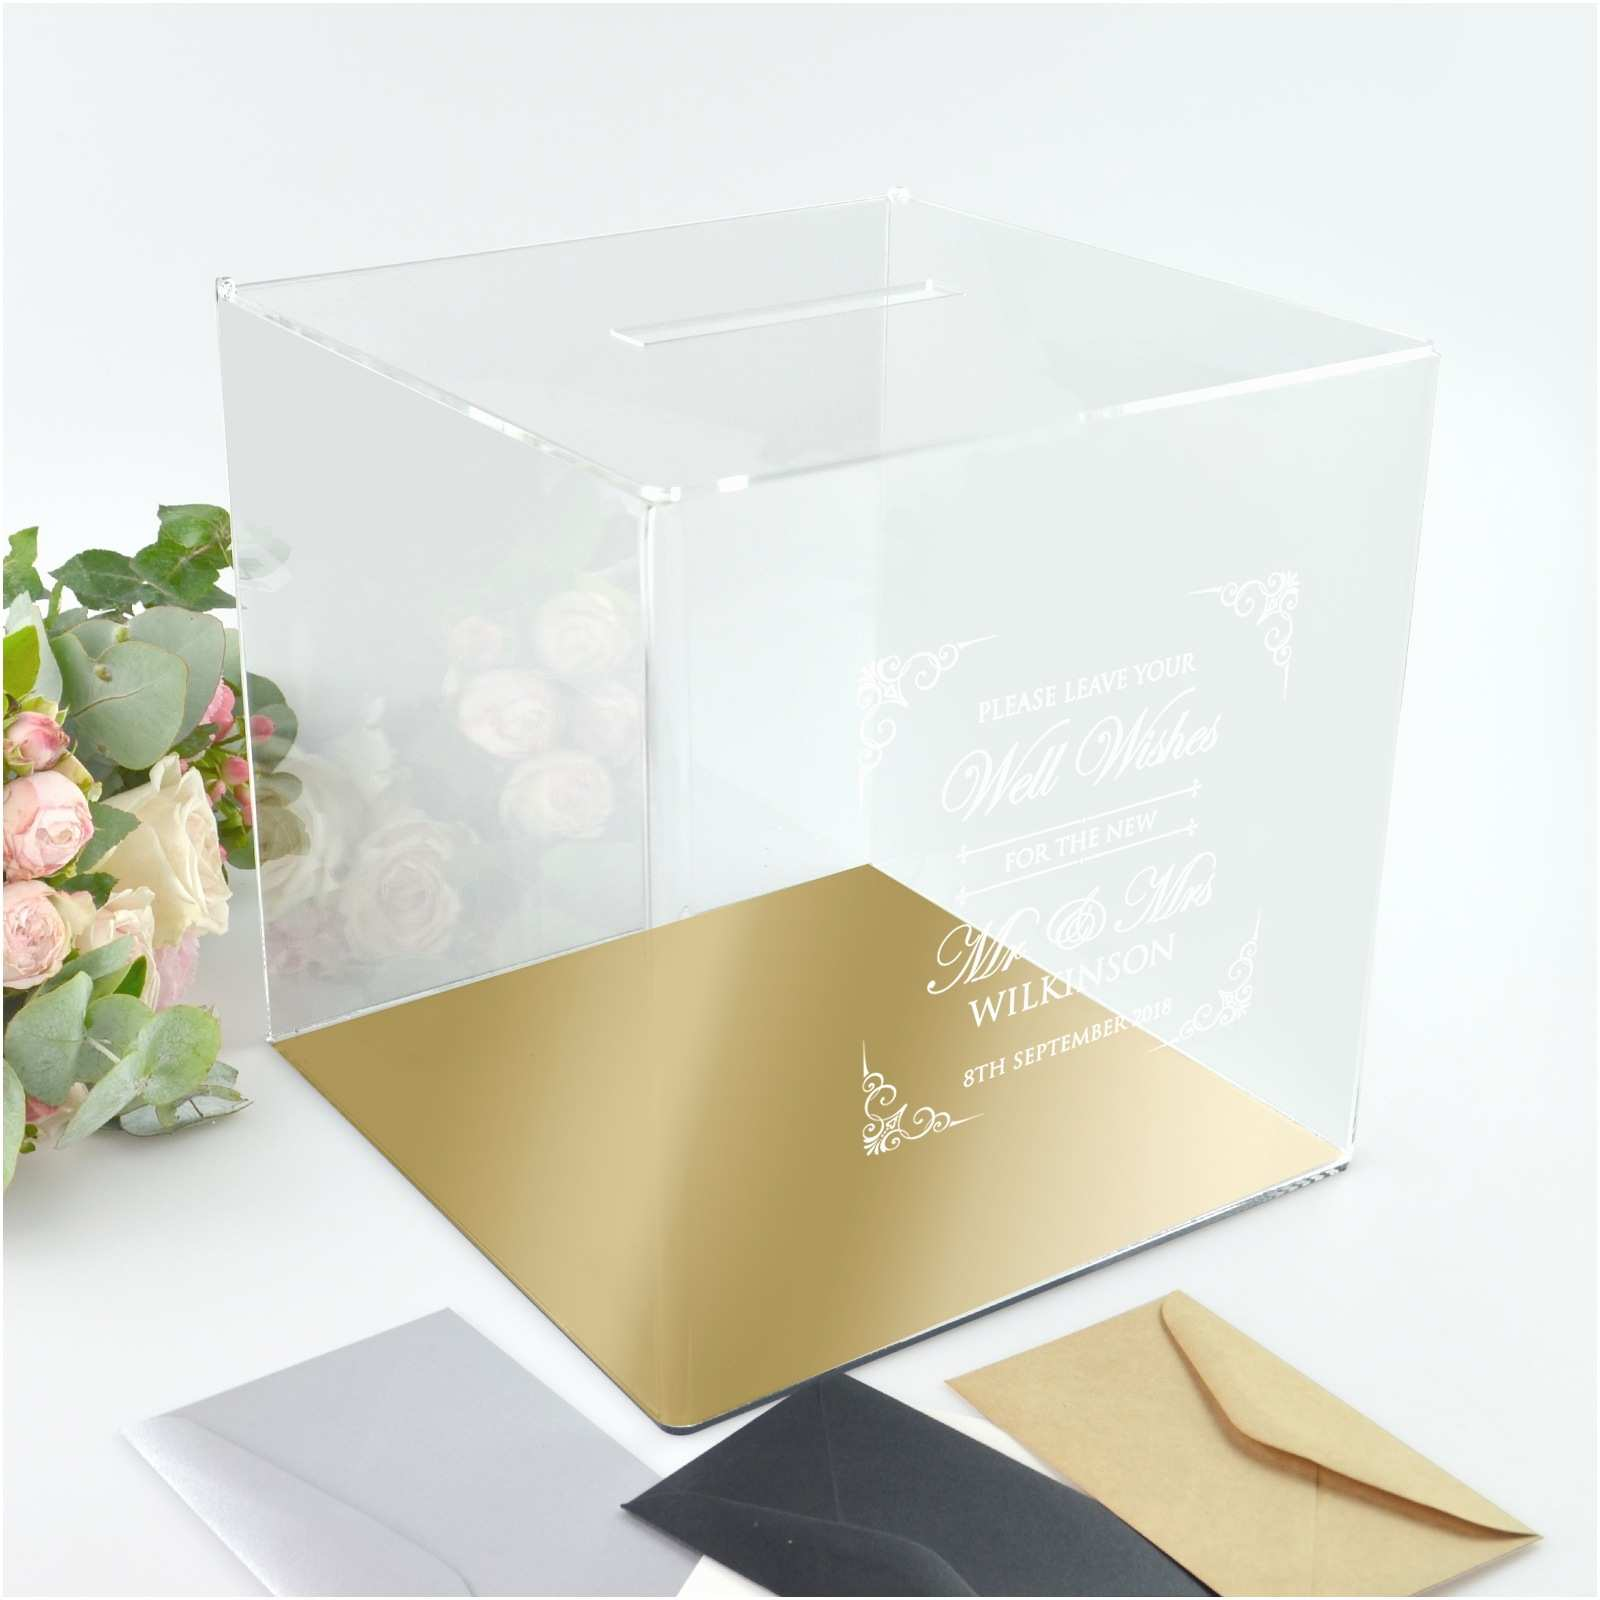 Acrylic Wedding Invitations with Box Acrylic Wishing Well Box